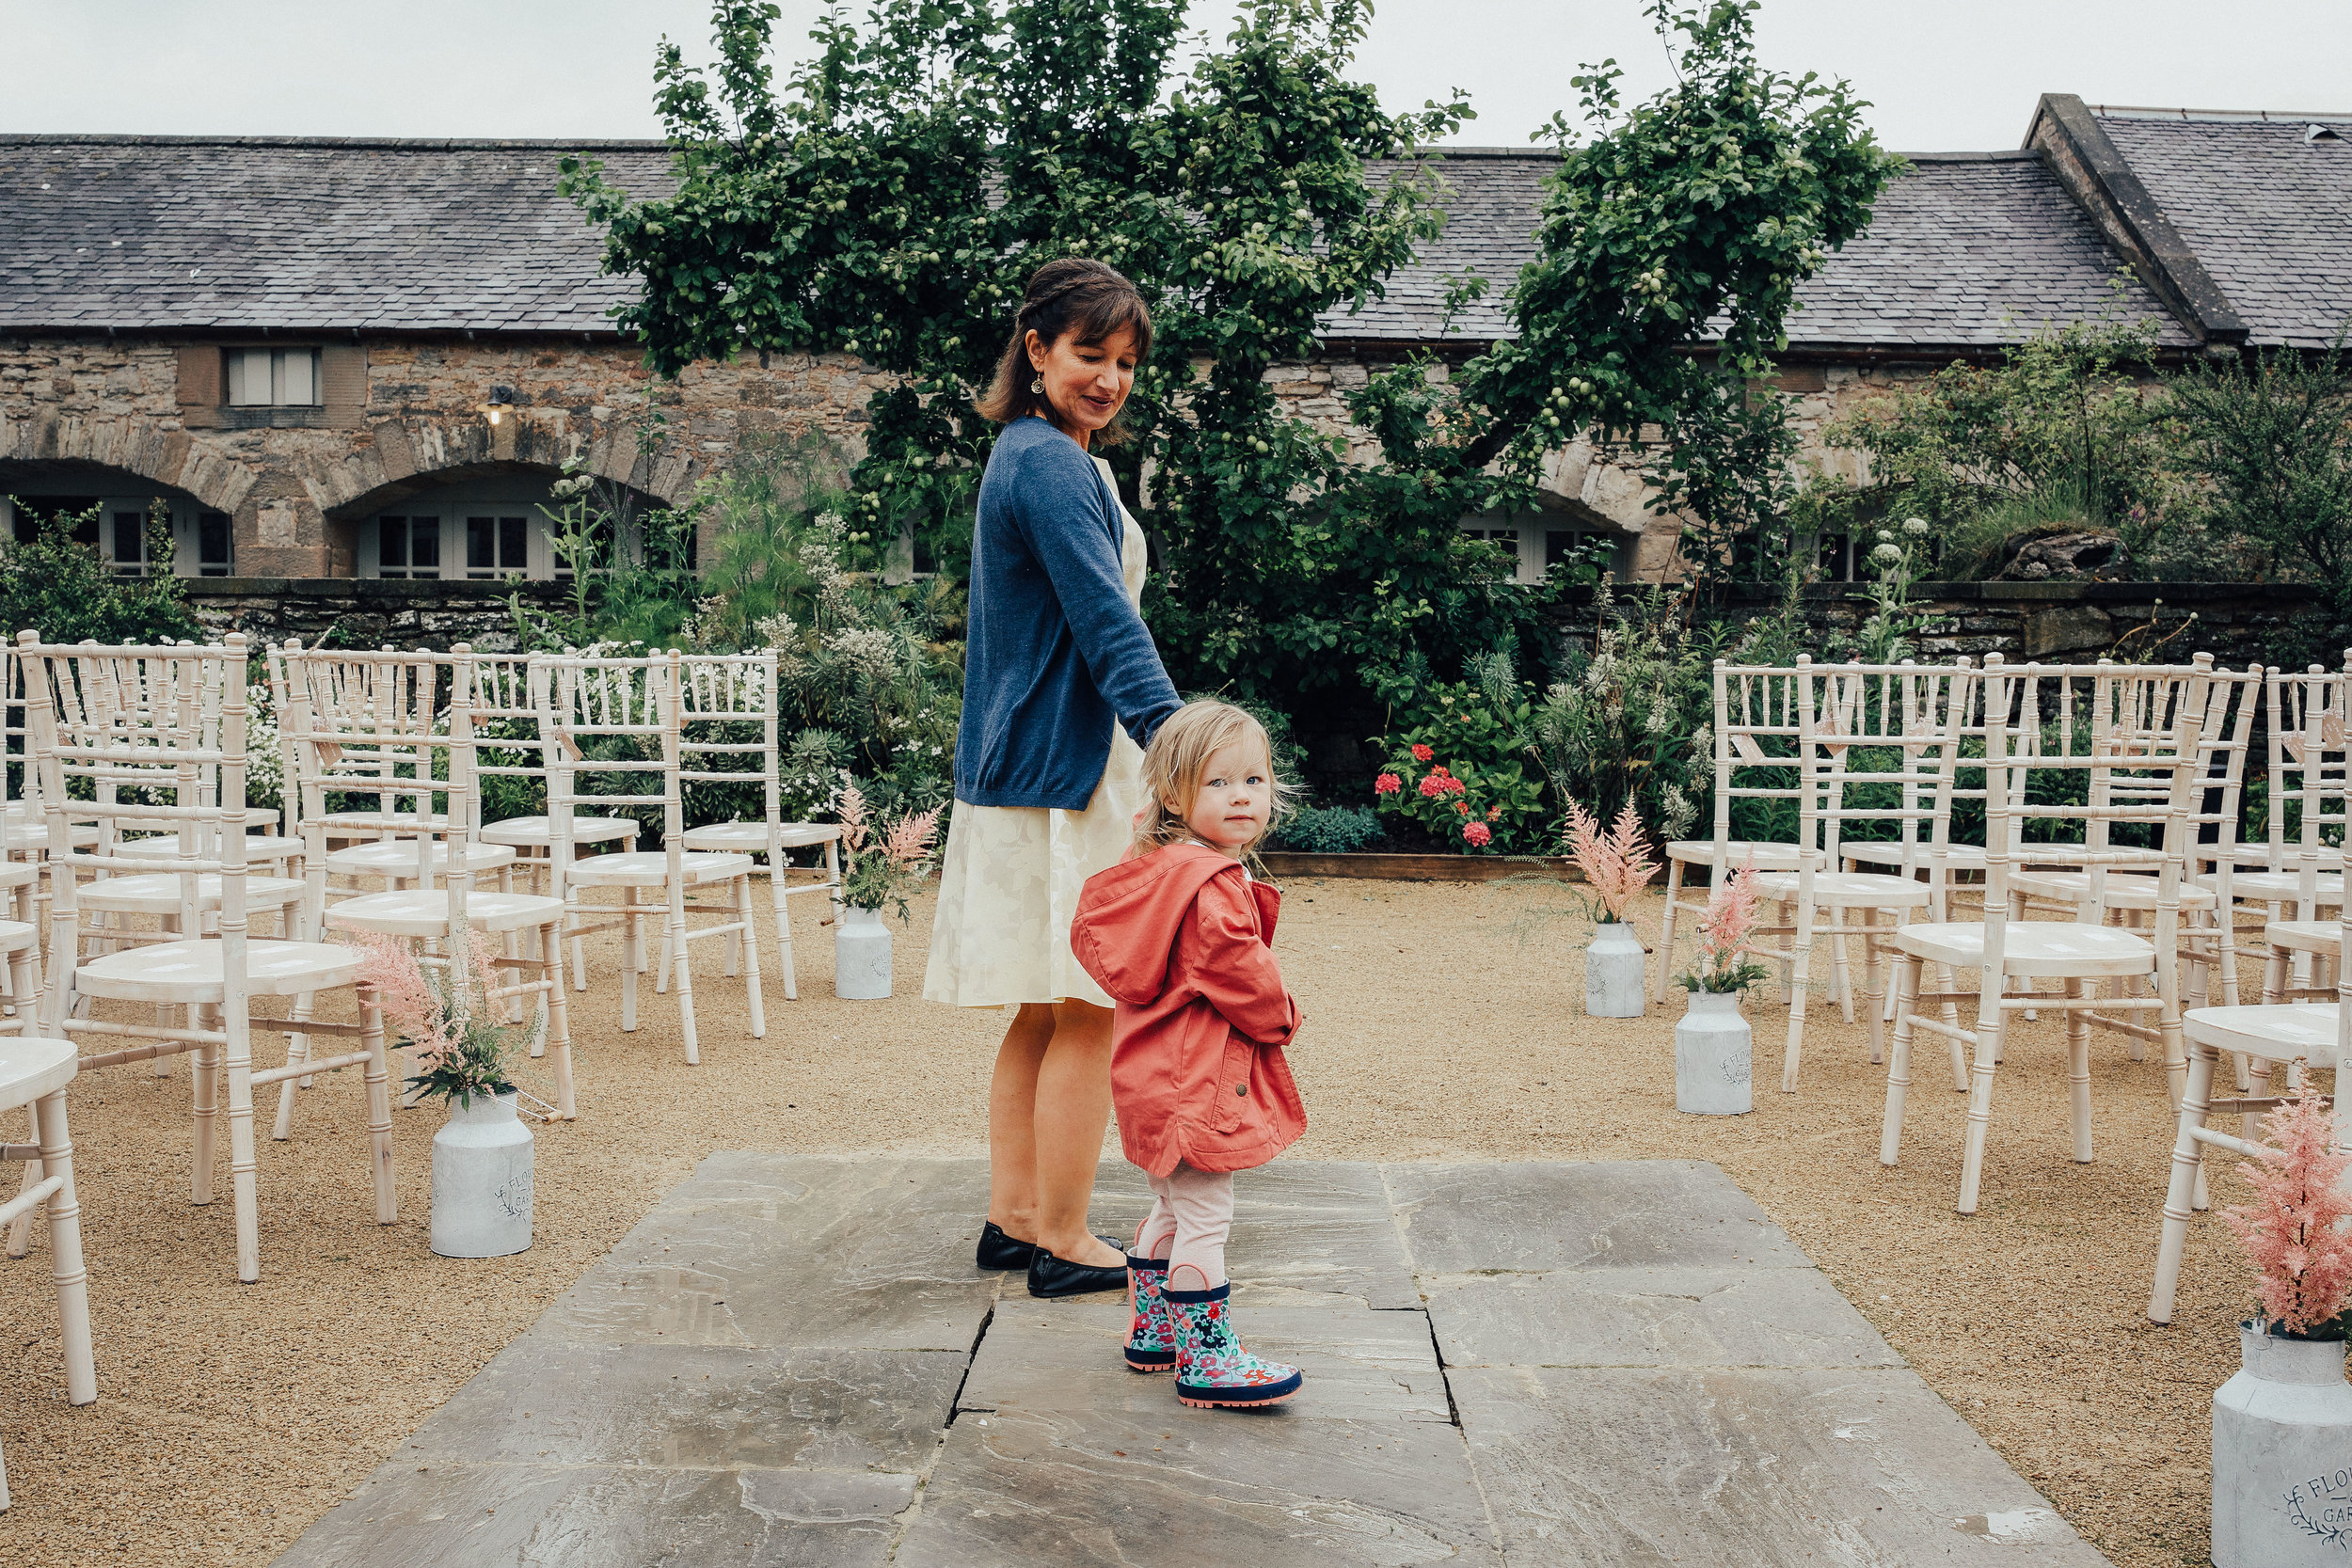 PJ_PHILLIPS_PHOTOGRAPHY_EDINBURGH_WEDDERBURN_BARNS_WEDDING_EDINBURGH_WEDDING_PHOTOGRAPHER_31.jpg